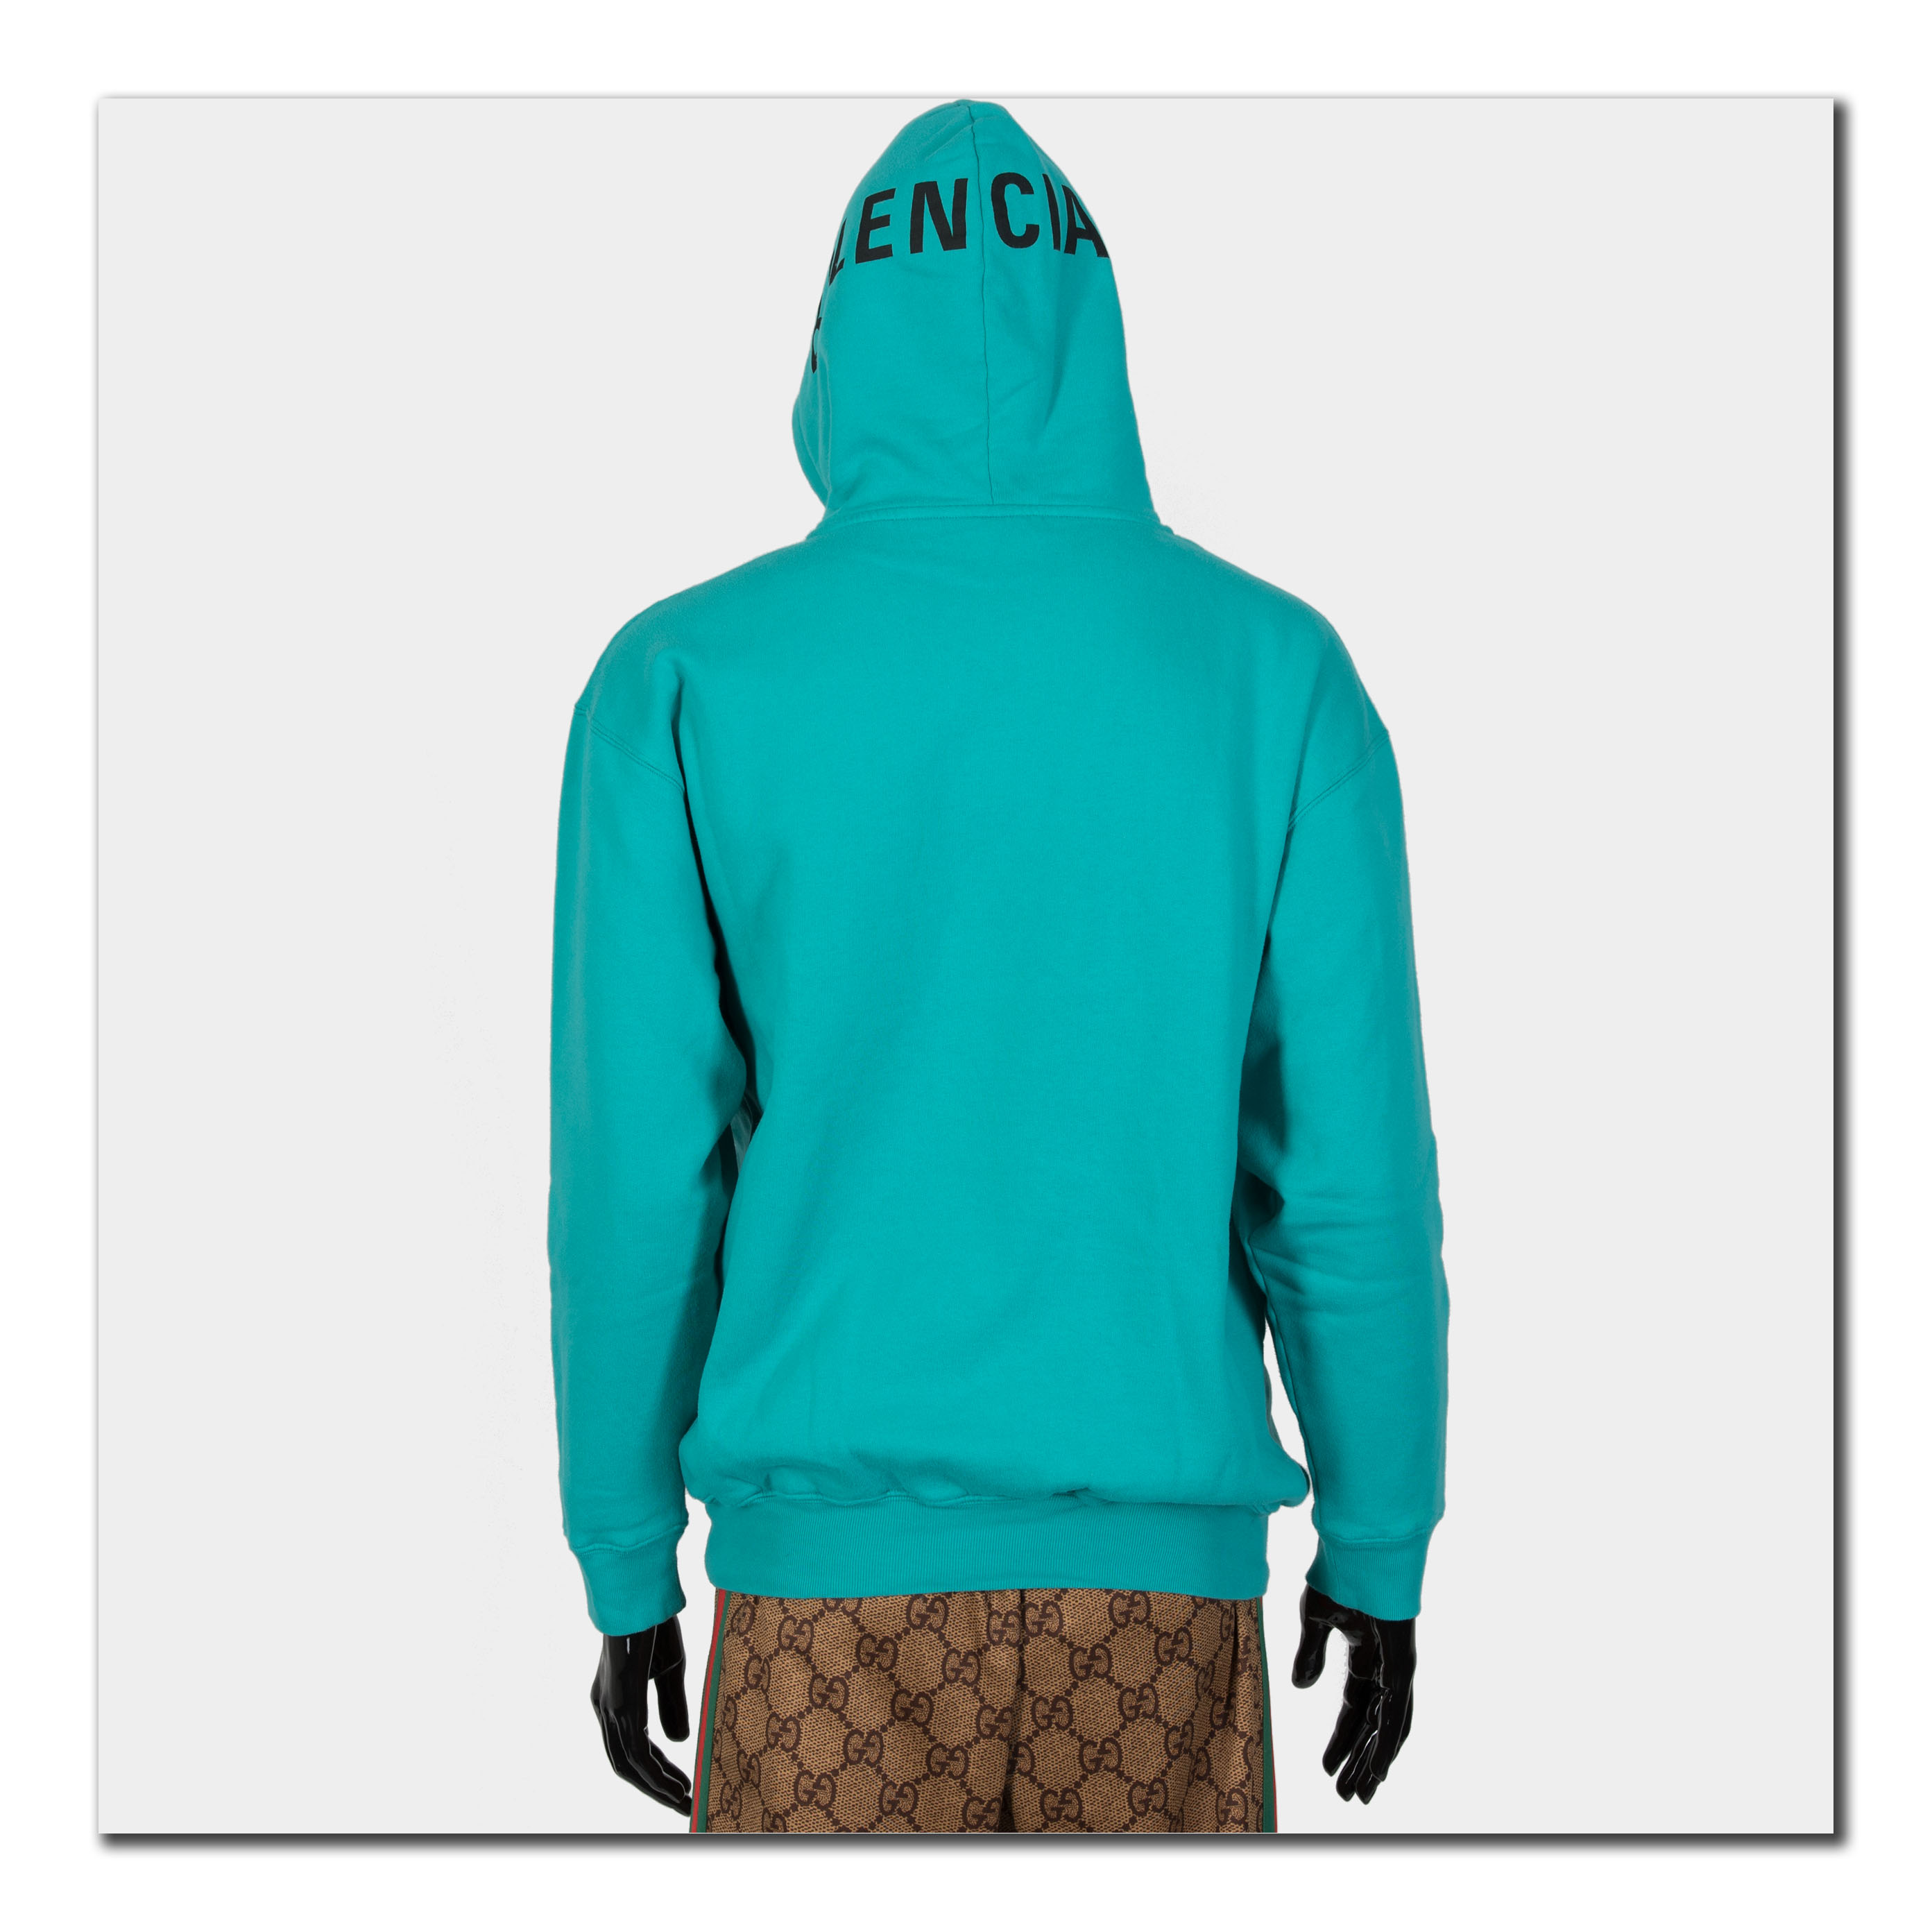 3129d6918cc2 Details about BALENCIAGA 850  Authentic New Cotton Blend Logo Print Hoodie  In Turquoise